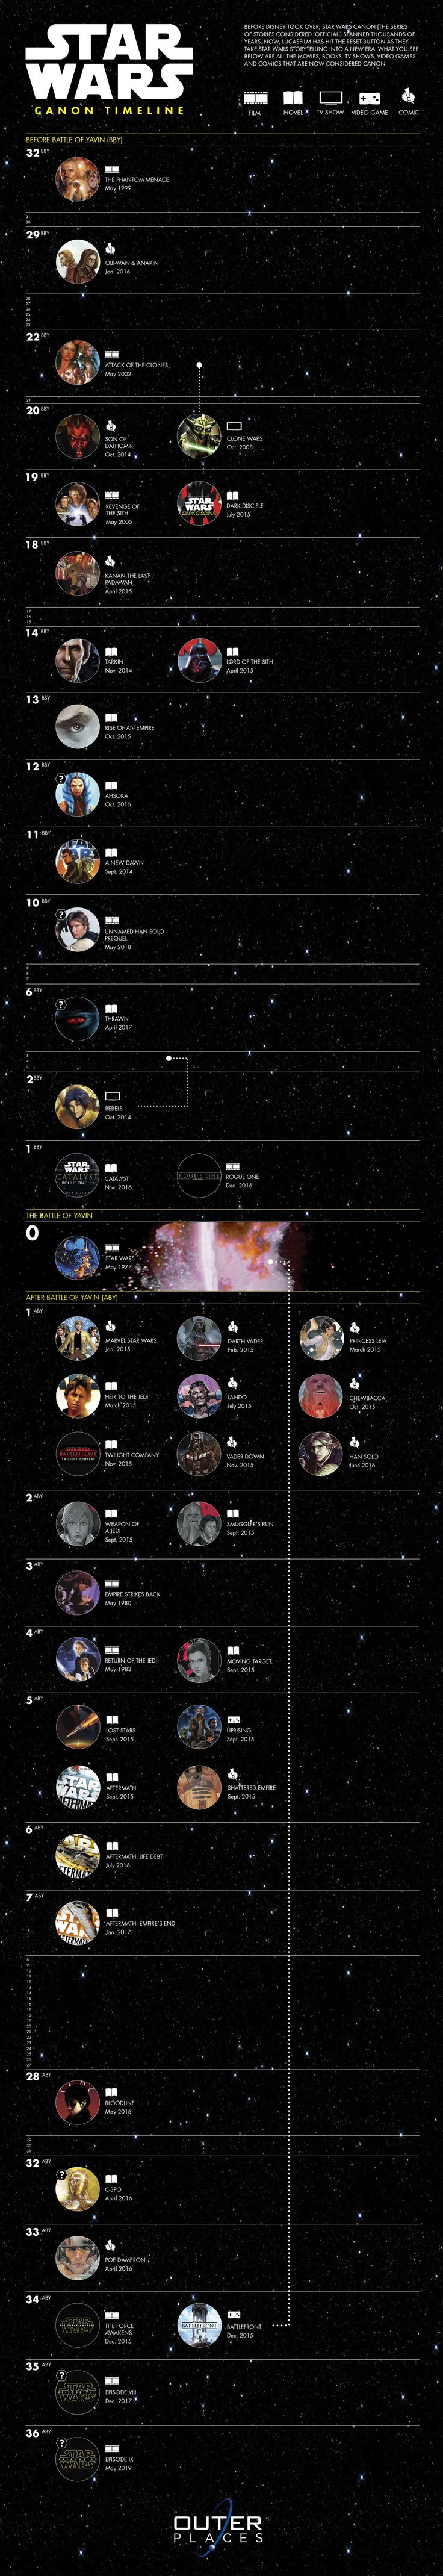 The HoloFeed — Star Wars Canon Timeline